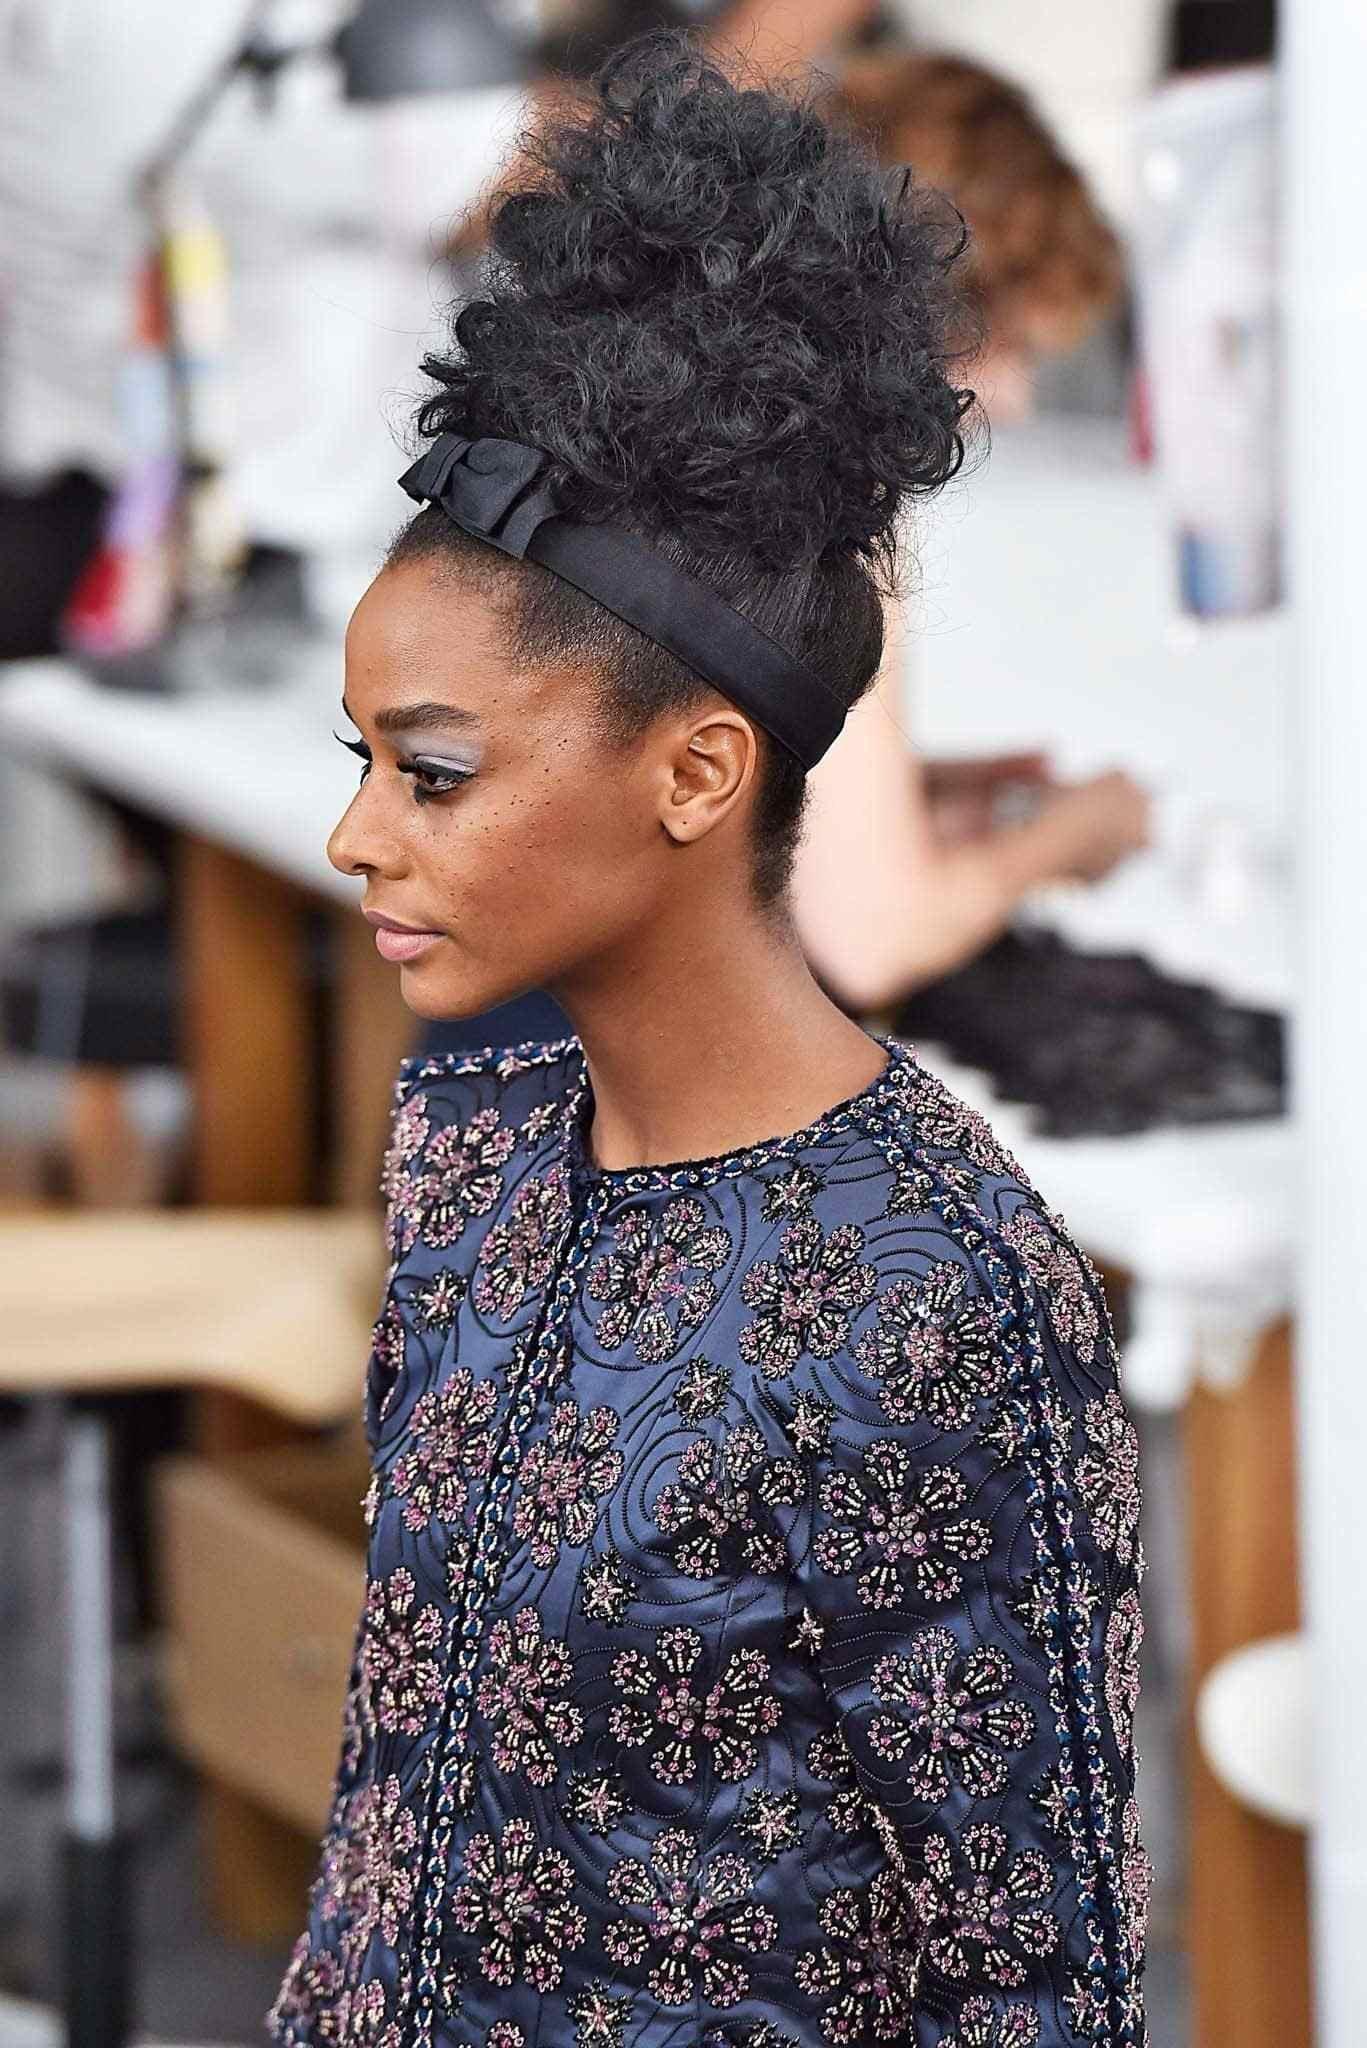 The Best African American Prom Hairstyles 15 Hair Ideas To Steal Pictures